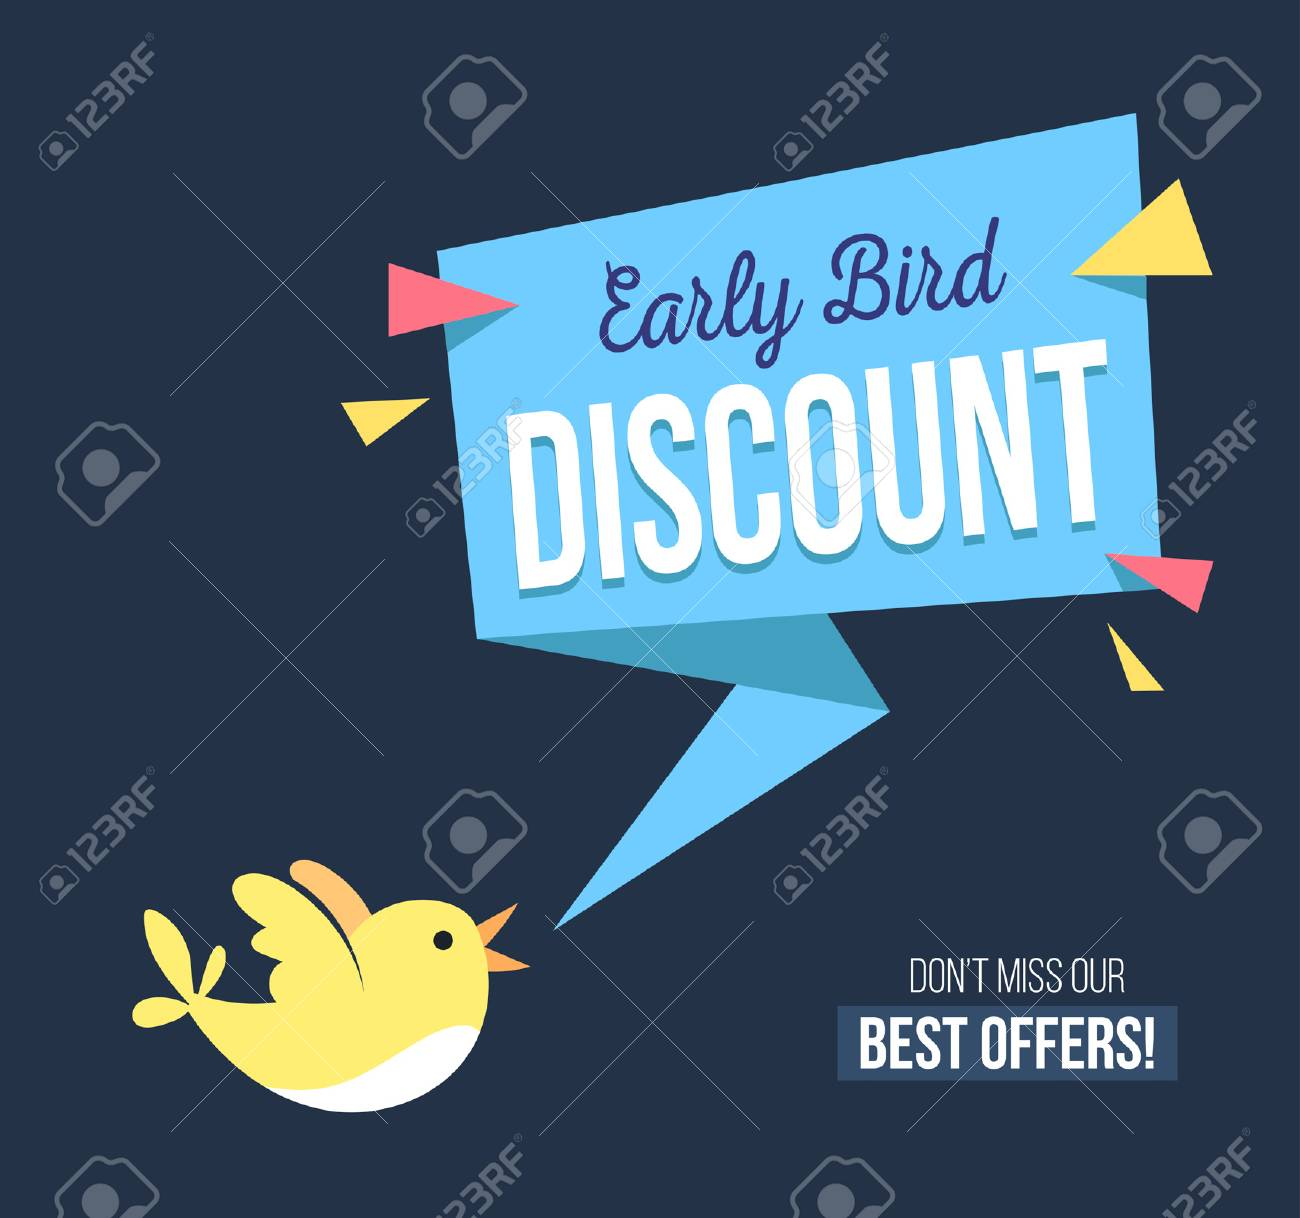 Early bird discount banner with cute bird and geomethic shapes. Promotional design template on blue background with doodles. Vector illustration - 101211942